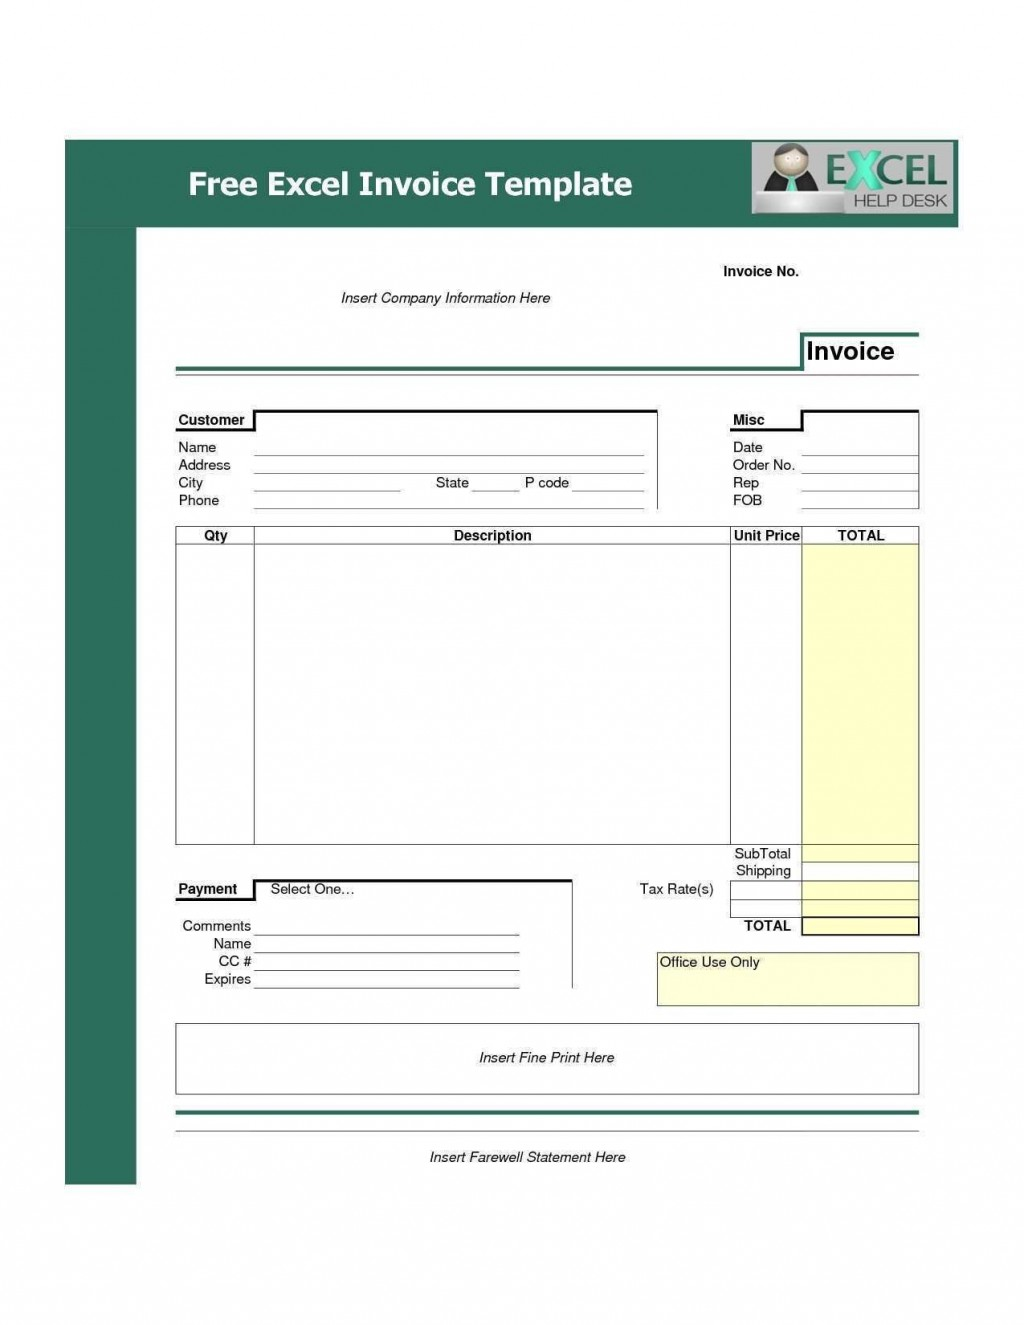 000 Phenomenal Free Tax Invoice Template Excel South Africa High Definition Large